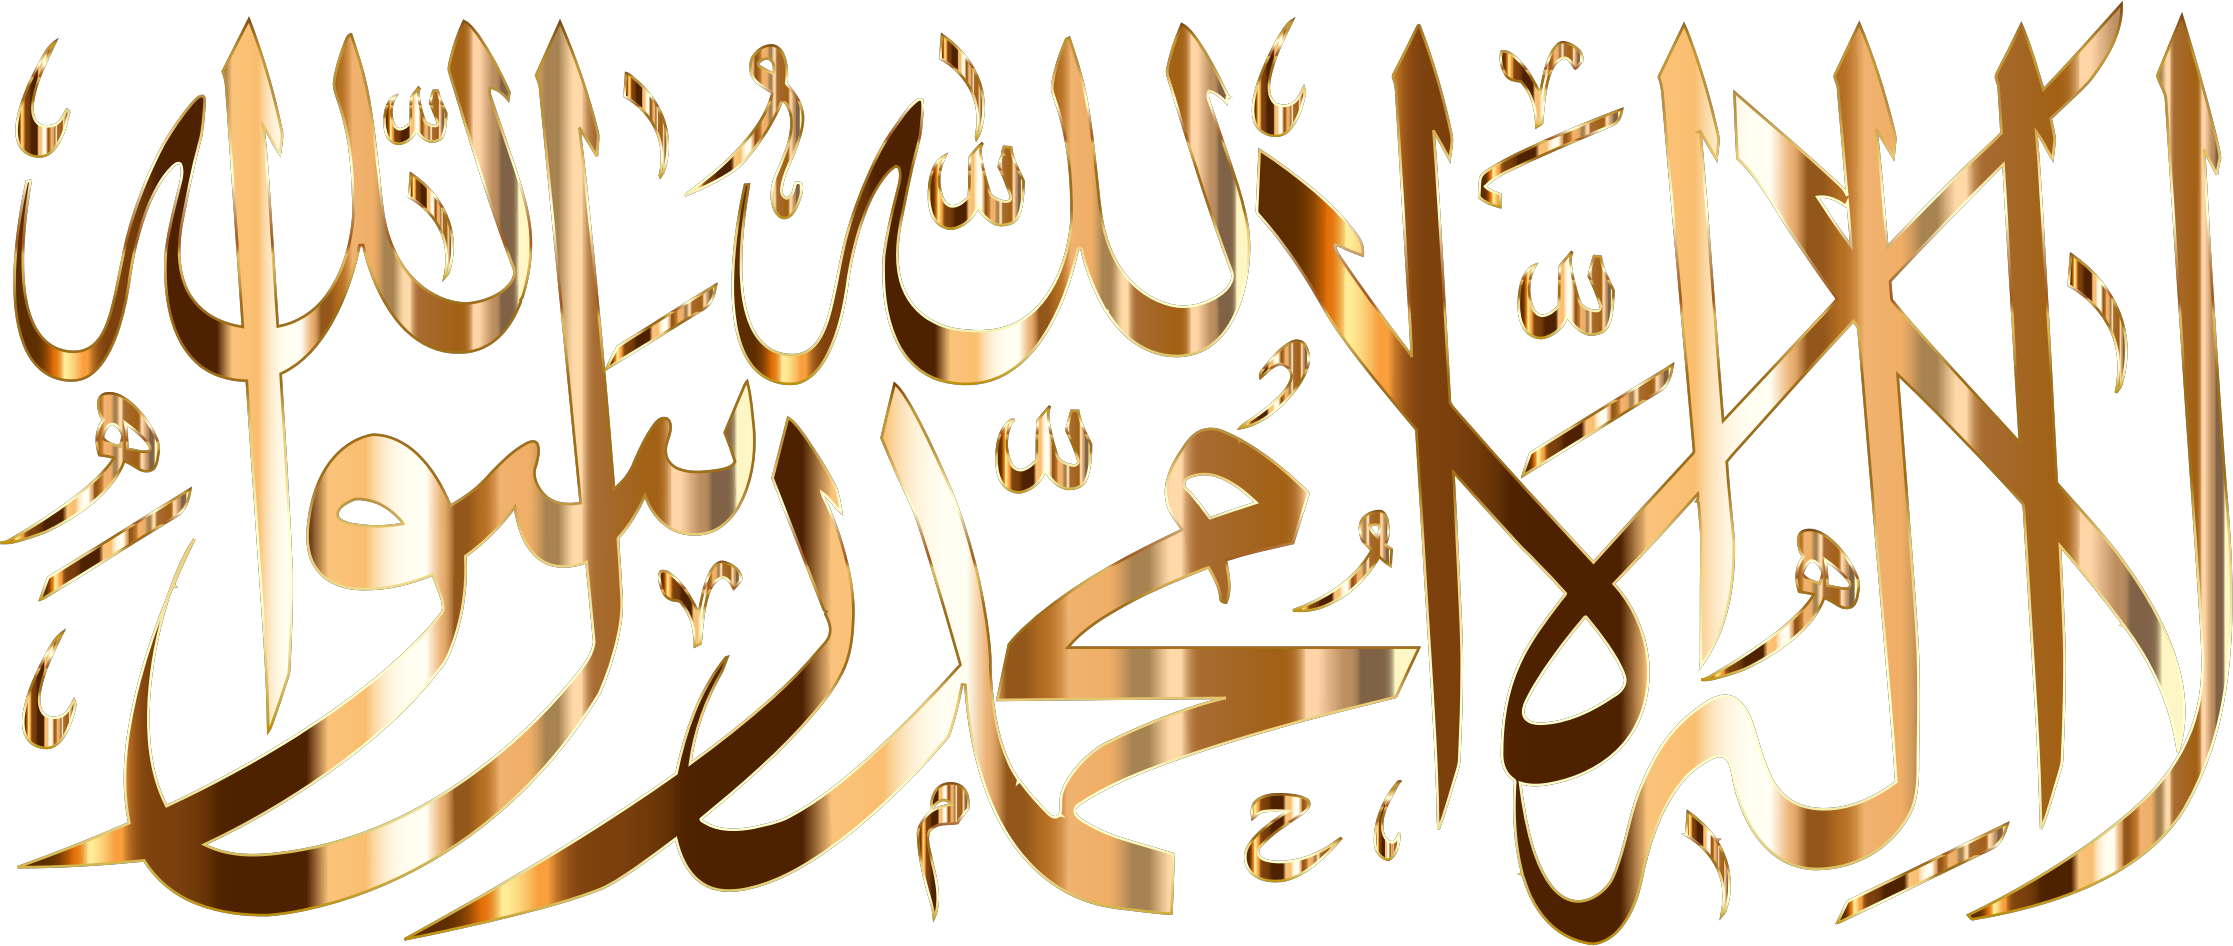 Gold Shahada Calligraphy No Background by GDJ